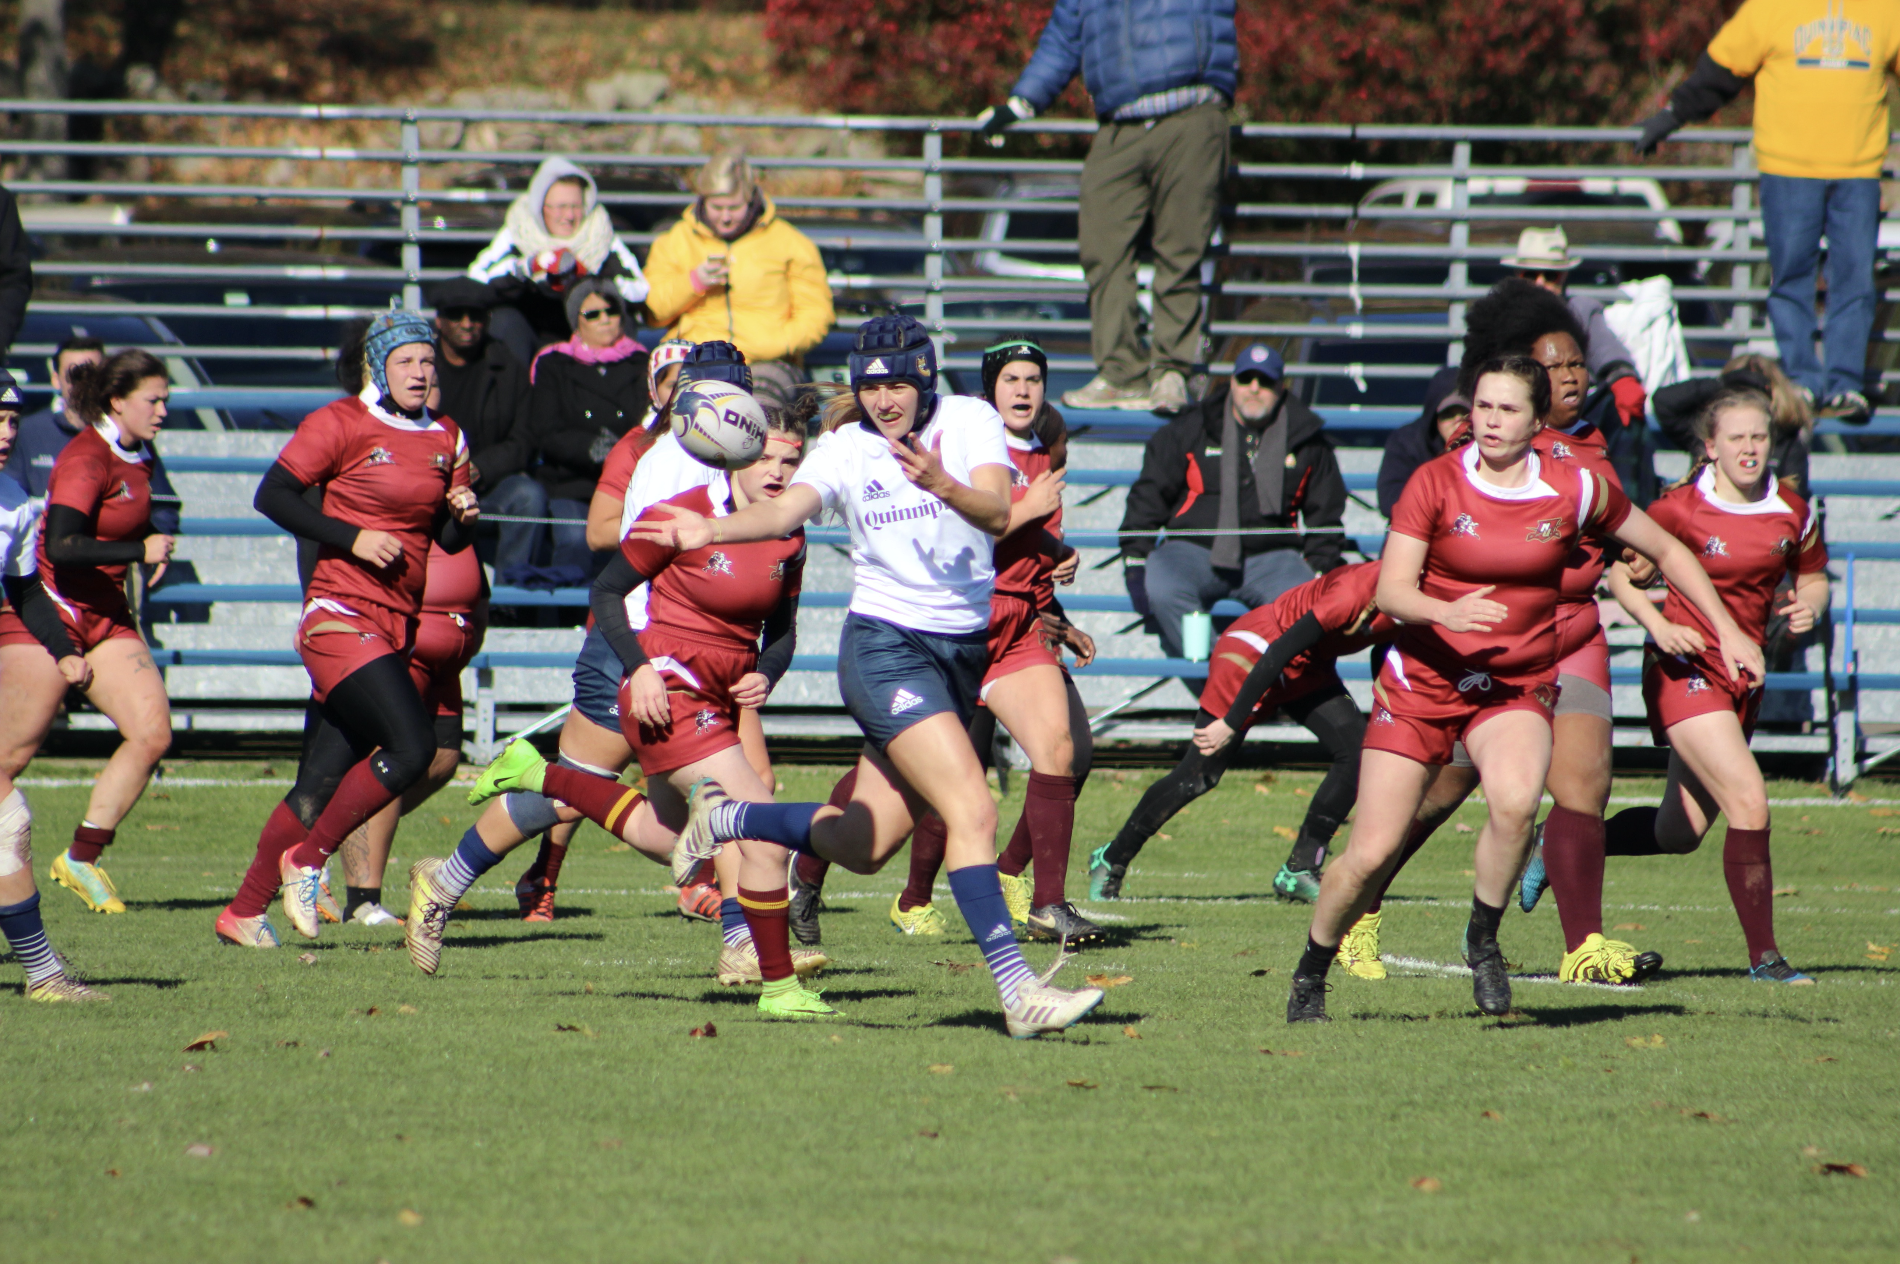 Quinnipiac rugby rolls past Norwich in NIRA quarterfinals